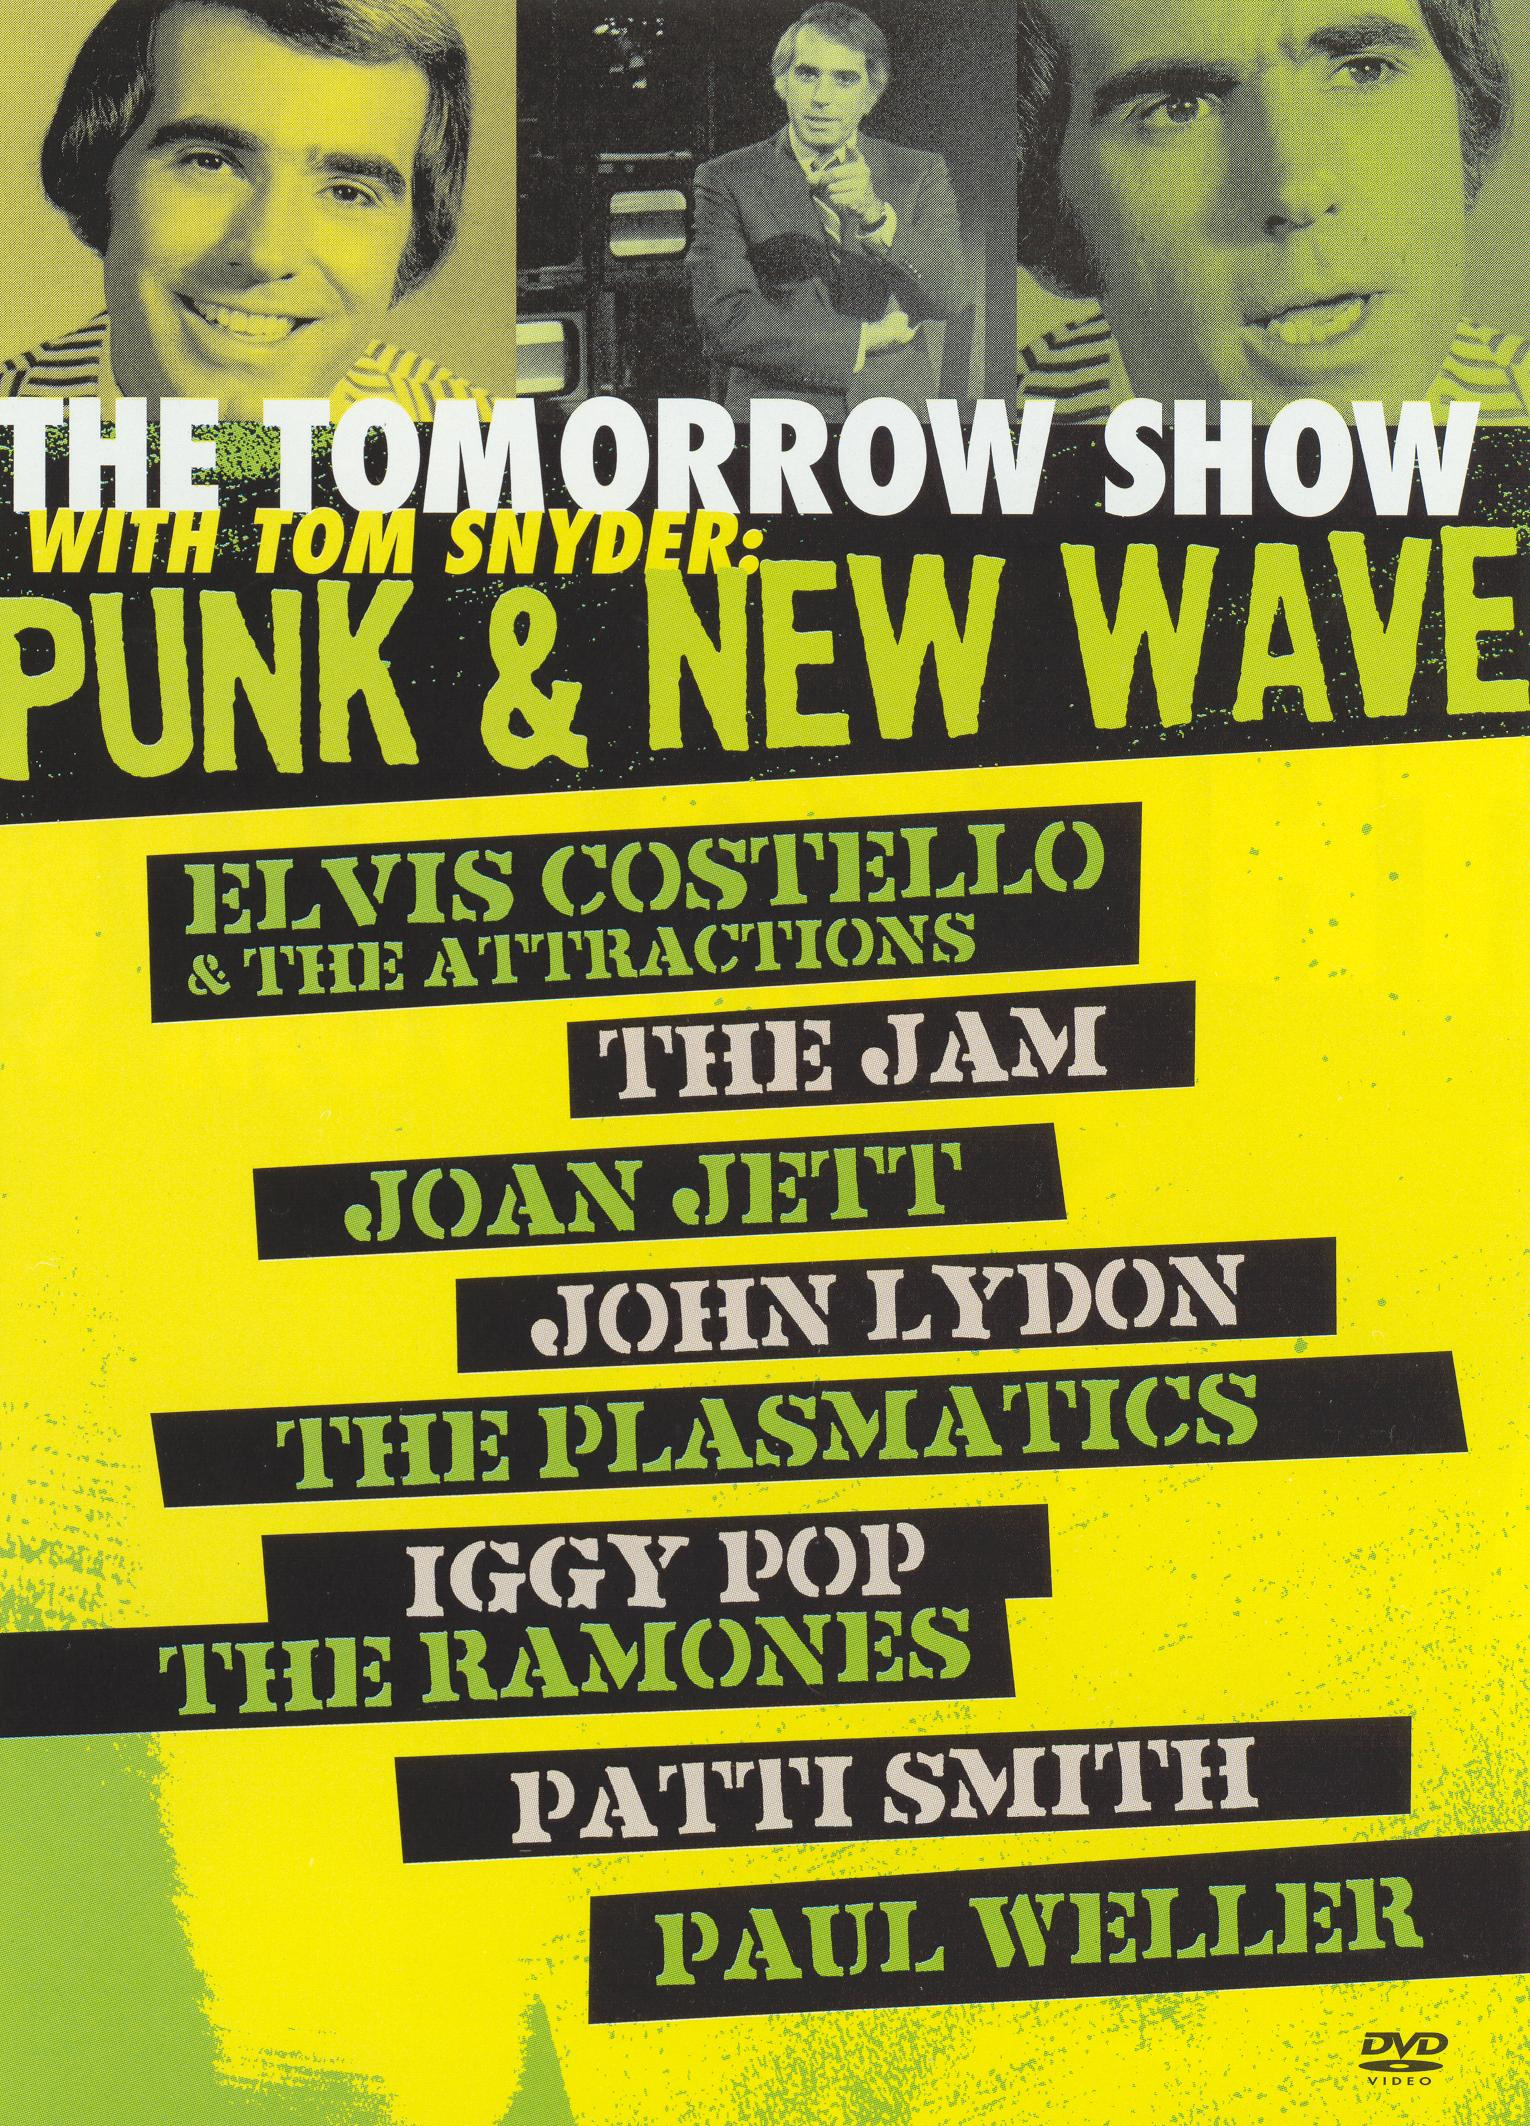 The Tomorrow Show with Tom Snyder: Punk and New Wave